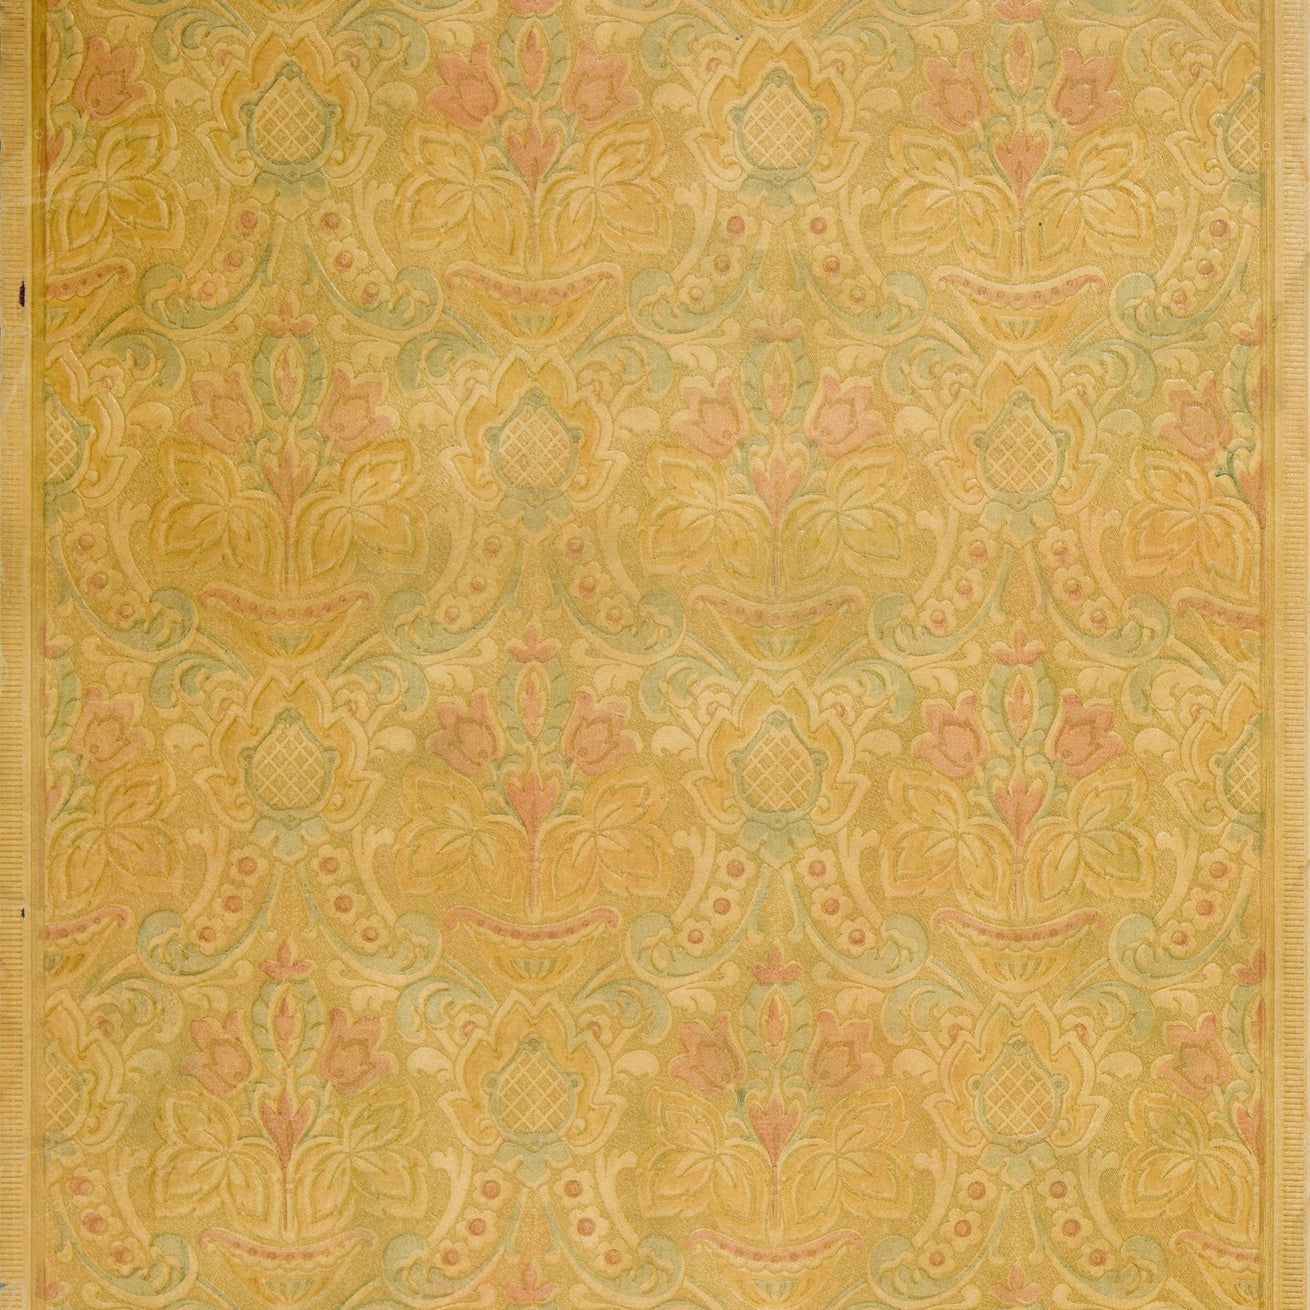 Embossed Baroque Floral - Antique Wallpaper Remnant